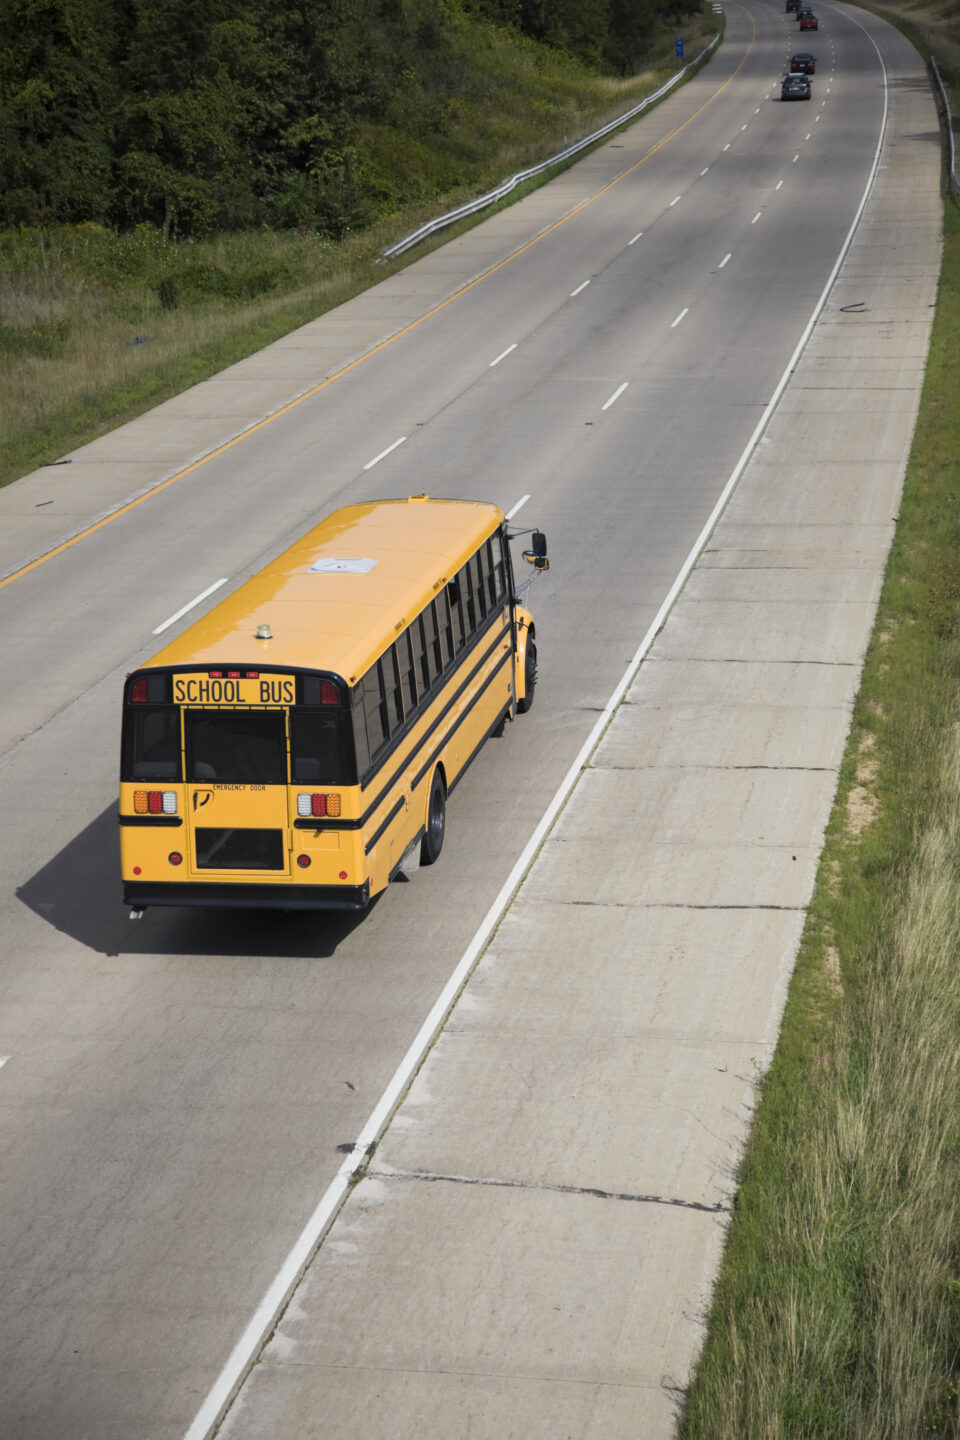 Yellow school bus travels along the road. Photo from envato elements